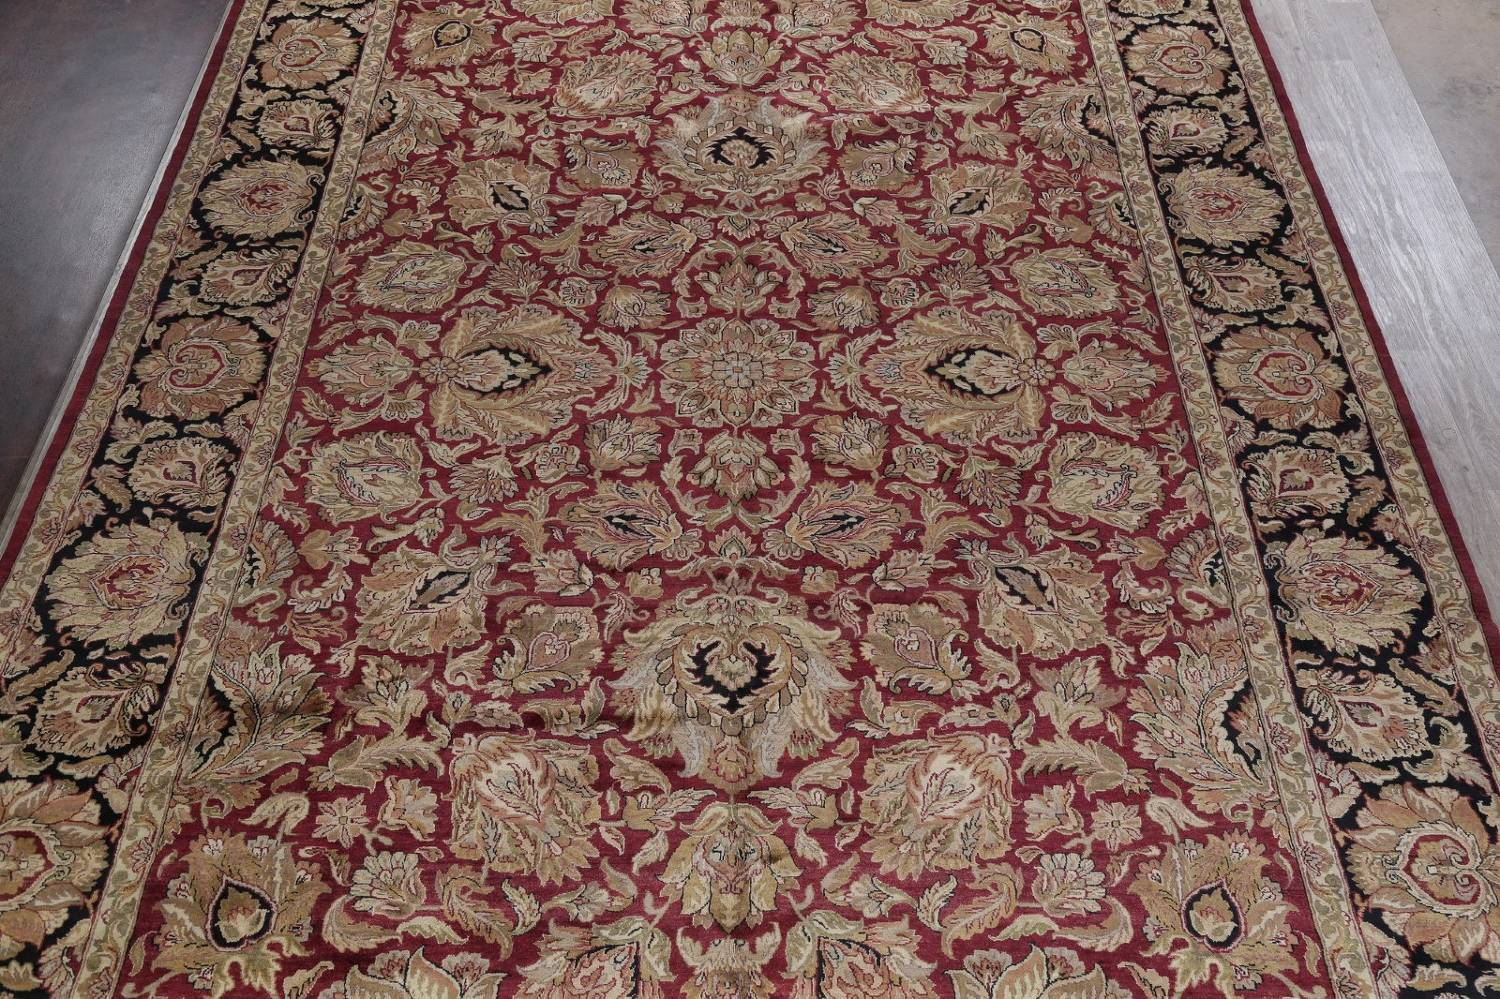 Mansion Floral Burgundy Agra Oriental Hand-Knotted Rug Wool 12x18 image 3